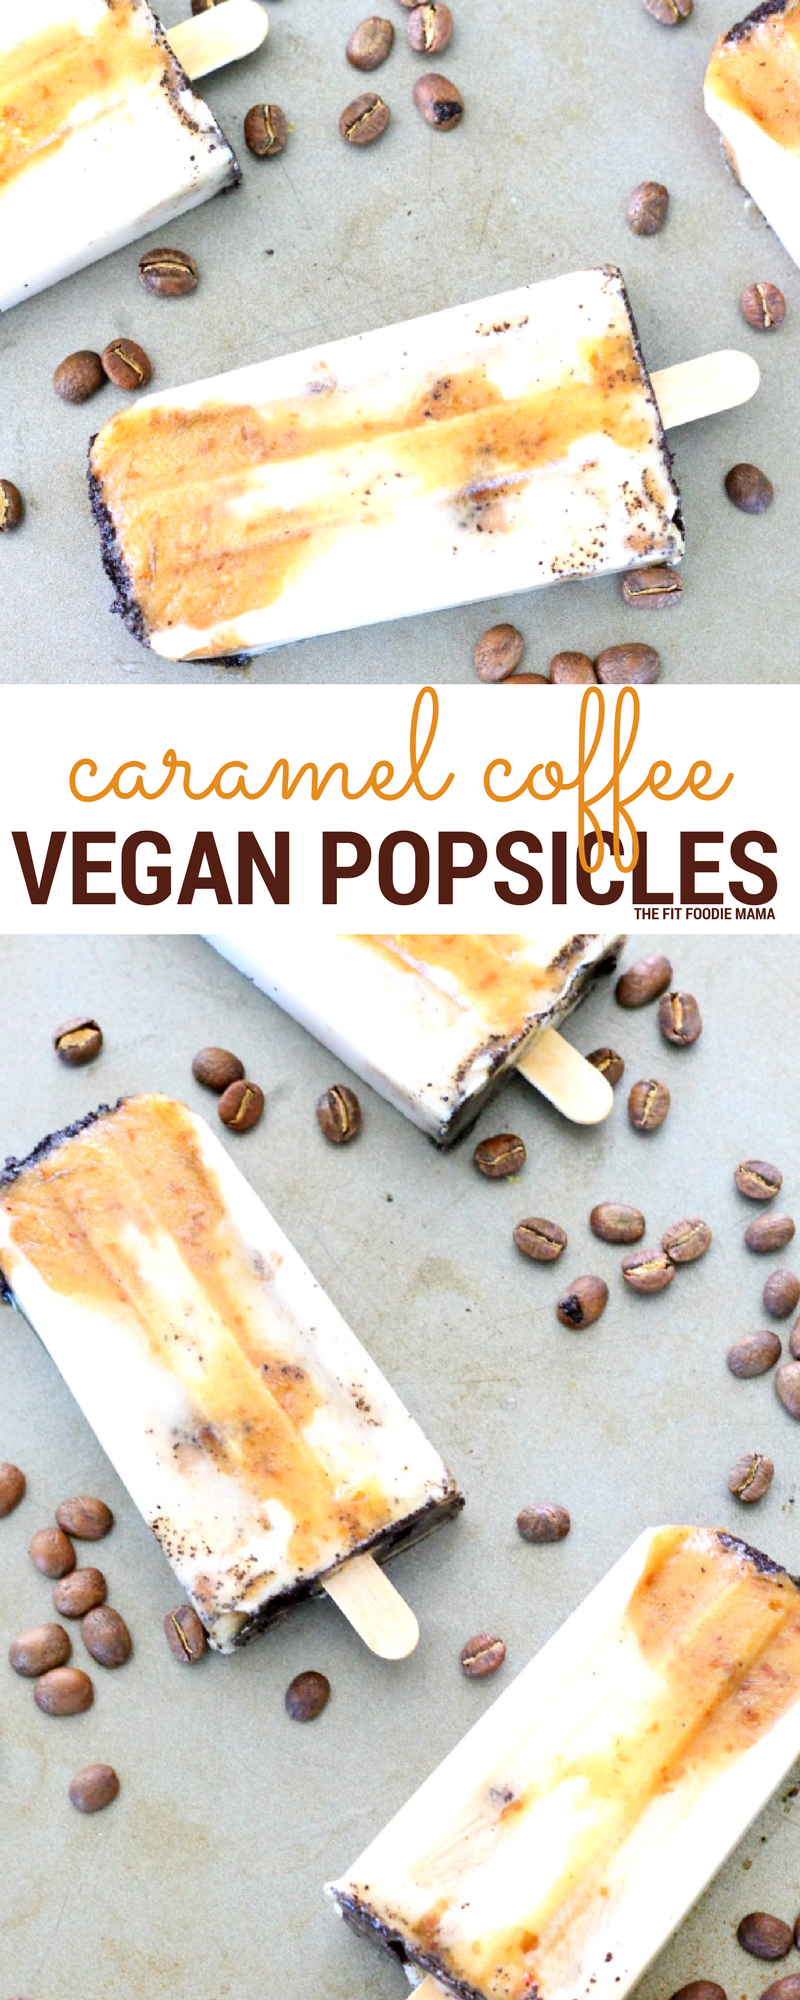 Caramel Coffee Vegan Popsicles made with Bard Valley Natural Delights Medjool Dates! Perfect way to recover, refuel and cool down after a hot summer run or workout! Find the recipe on TheFitFoodieMama.com